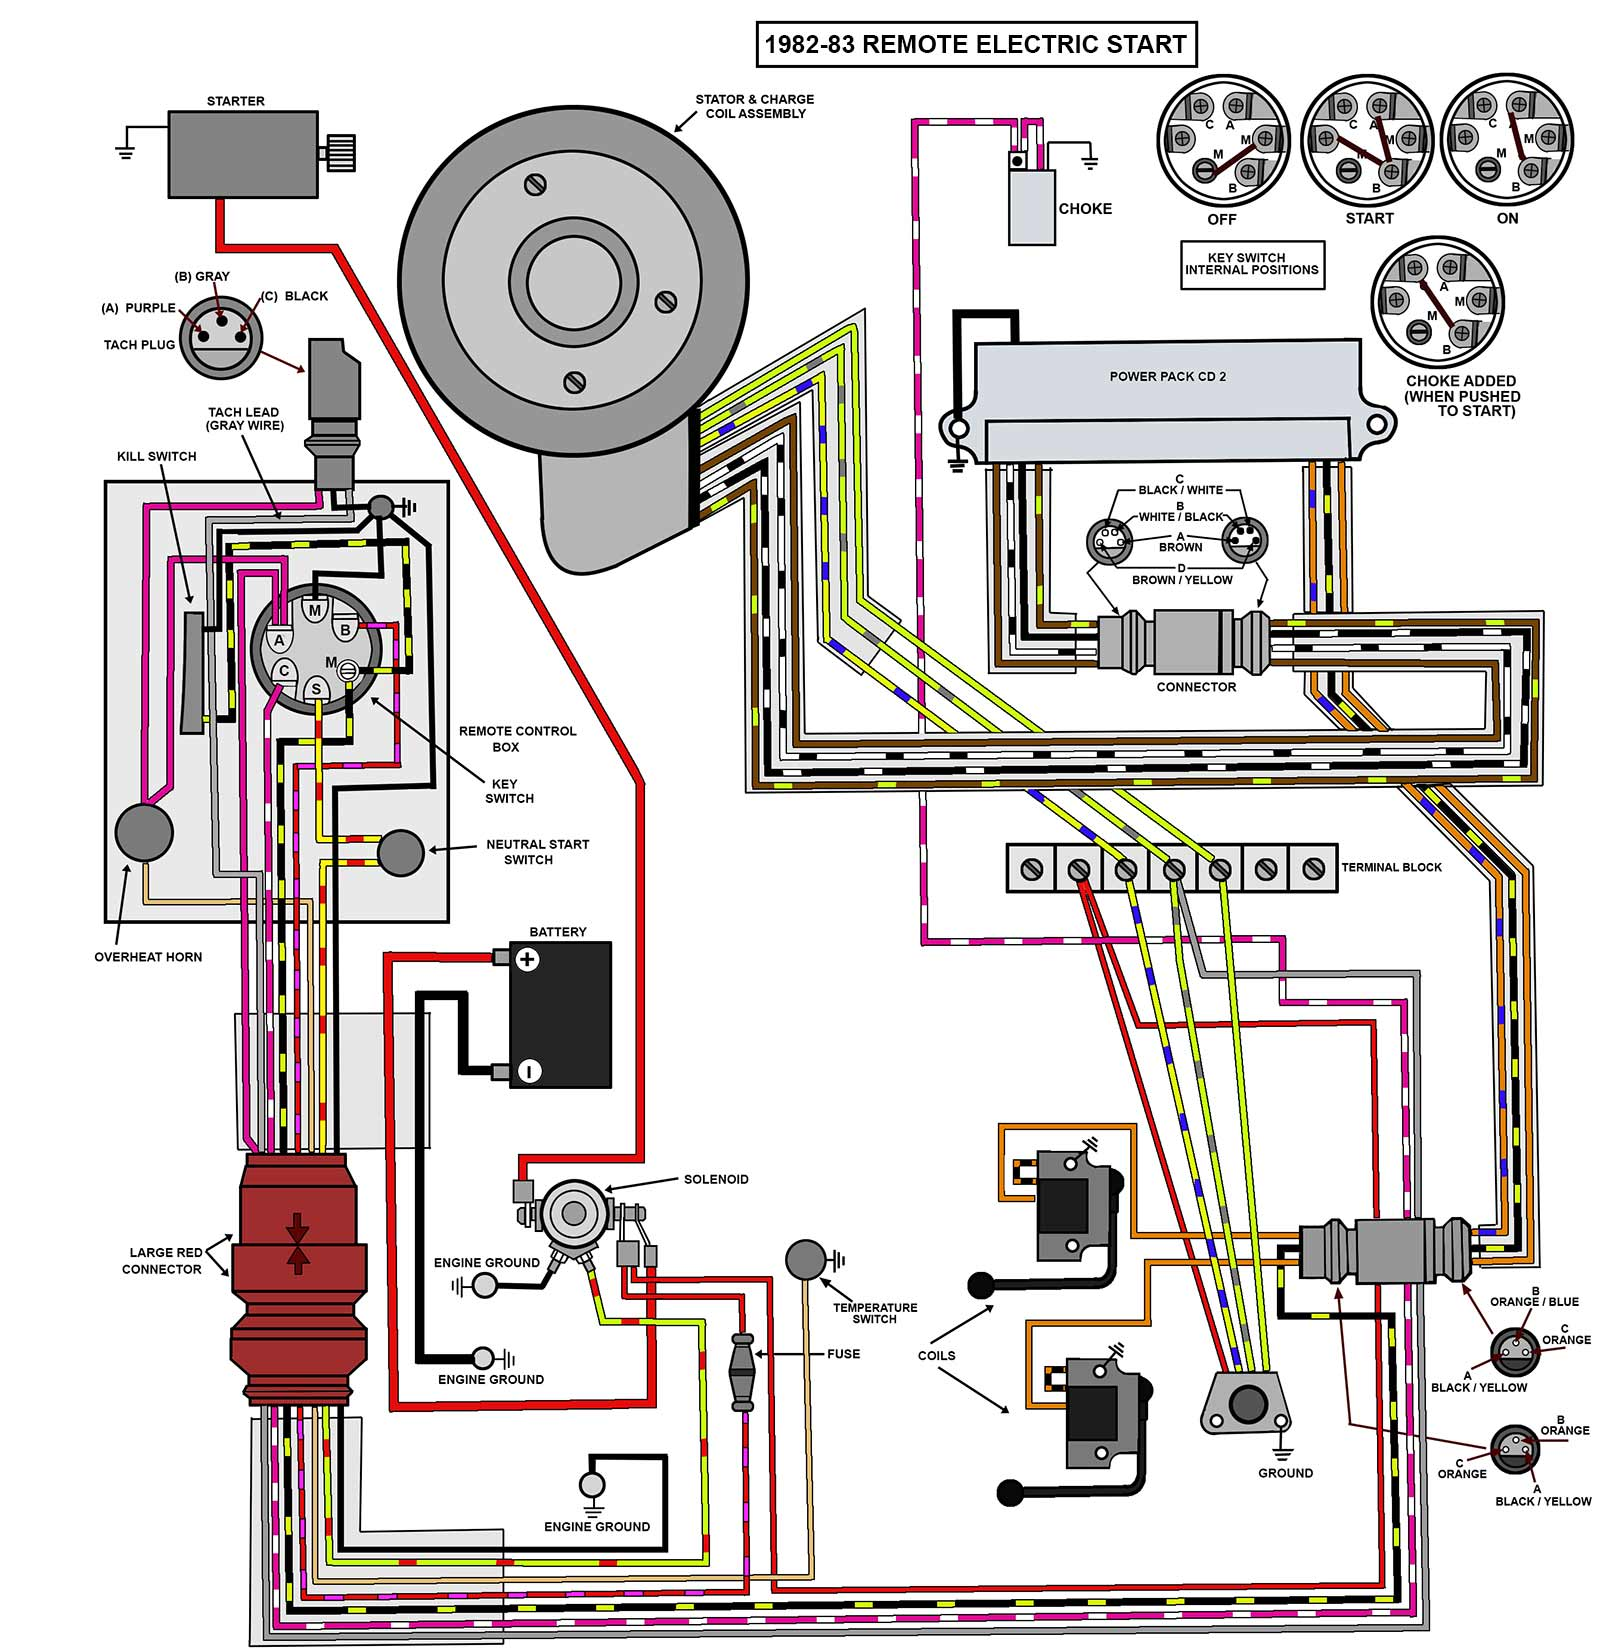 hight resolution of 1976 ski nautique wiring diagram